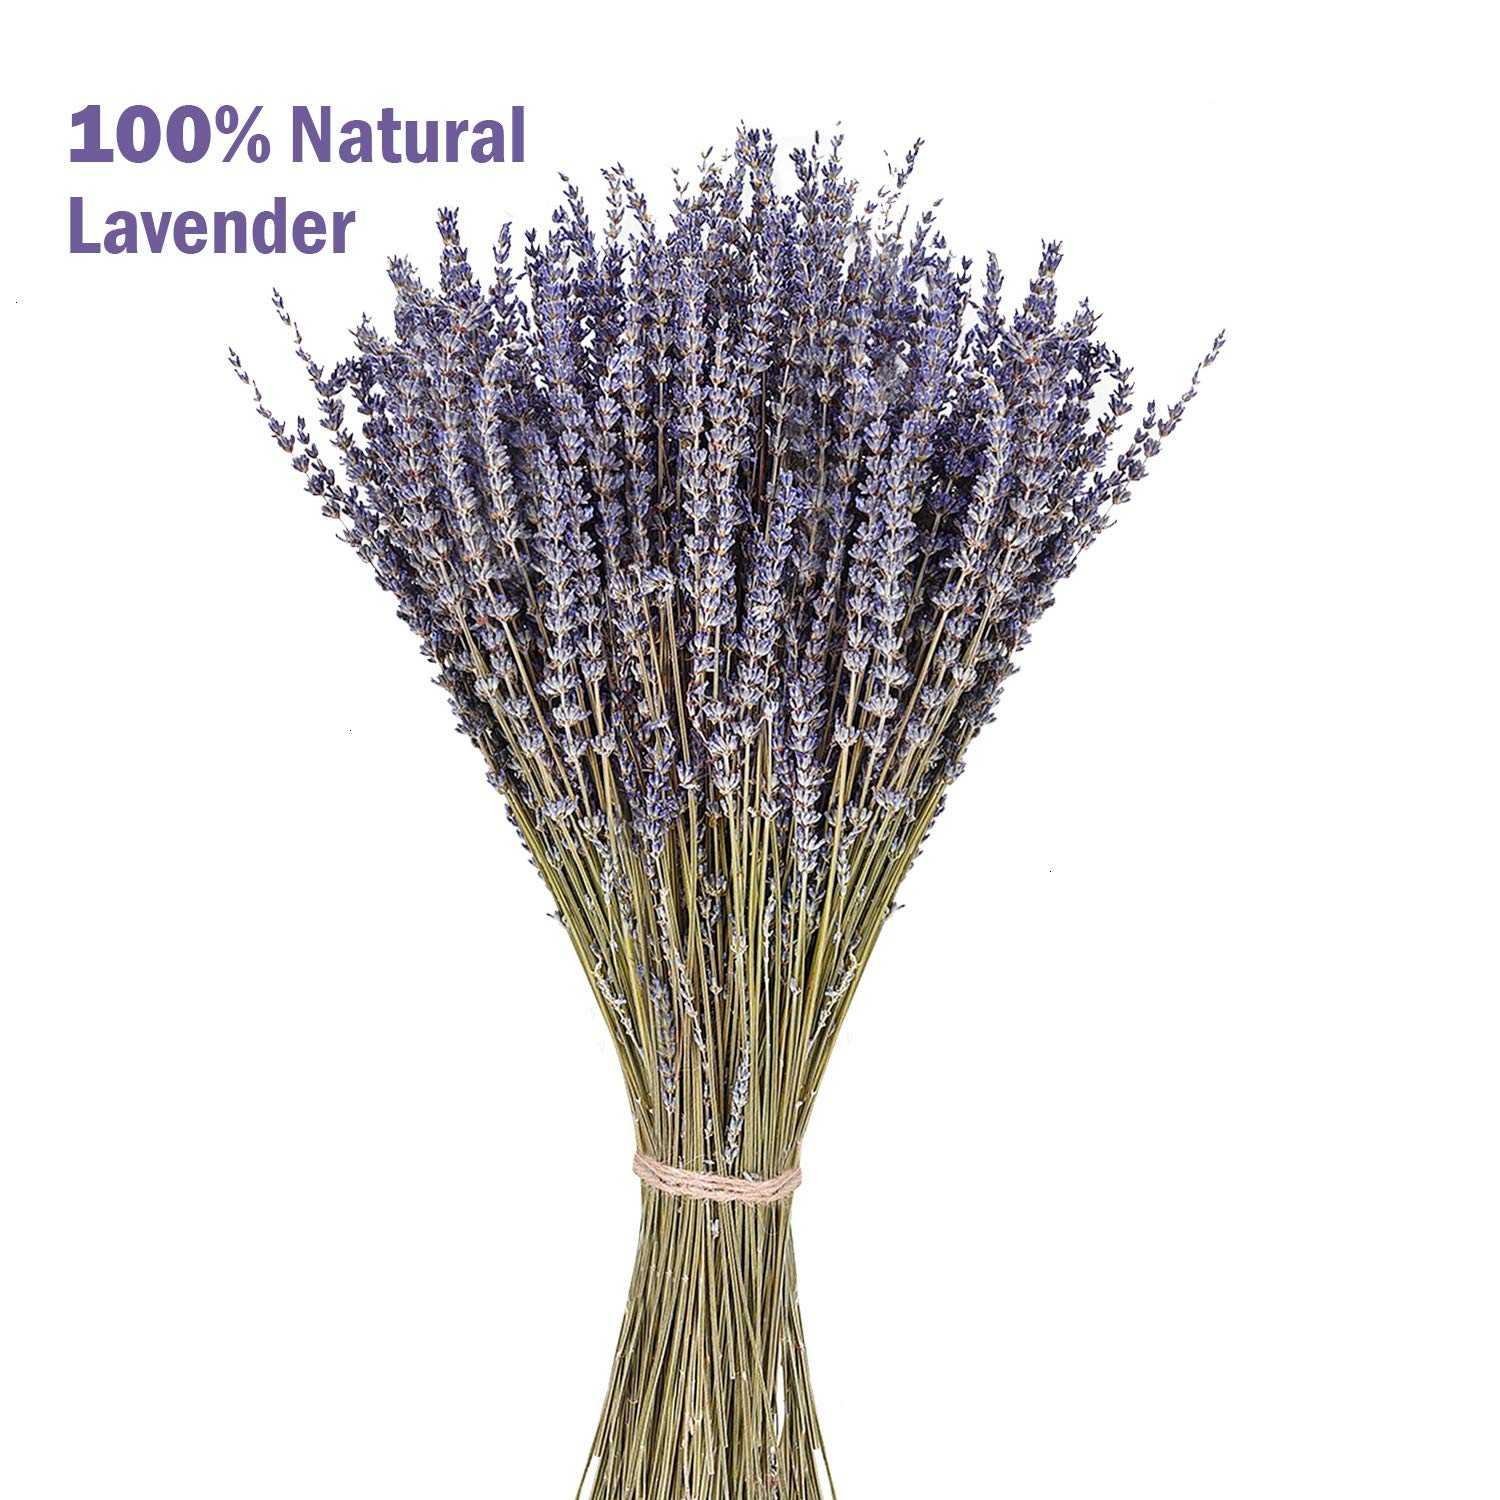 June Fox Dried Lavender Flowers 100% Natural